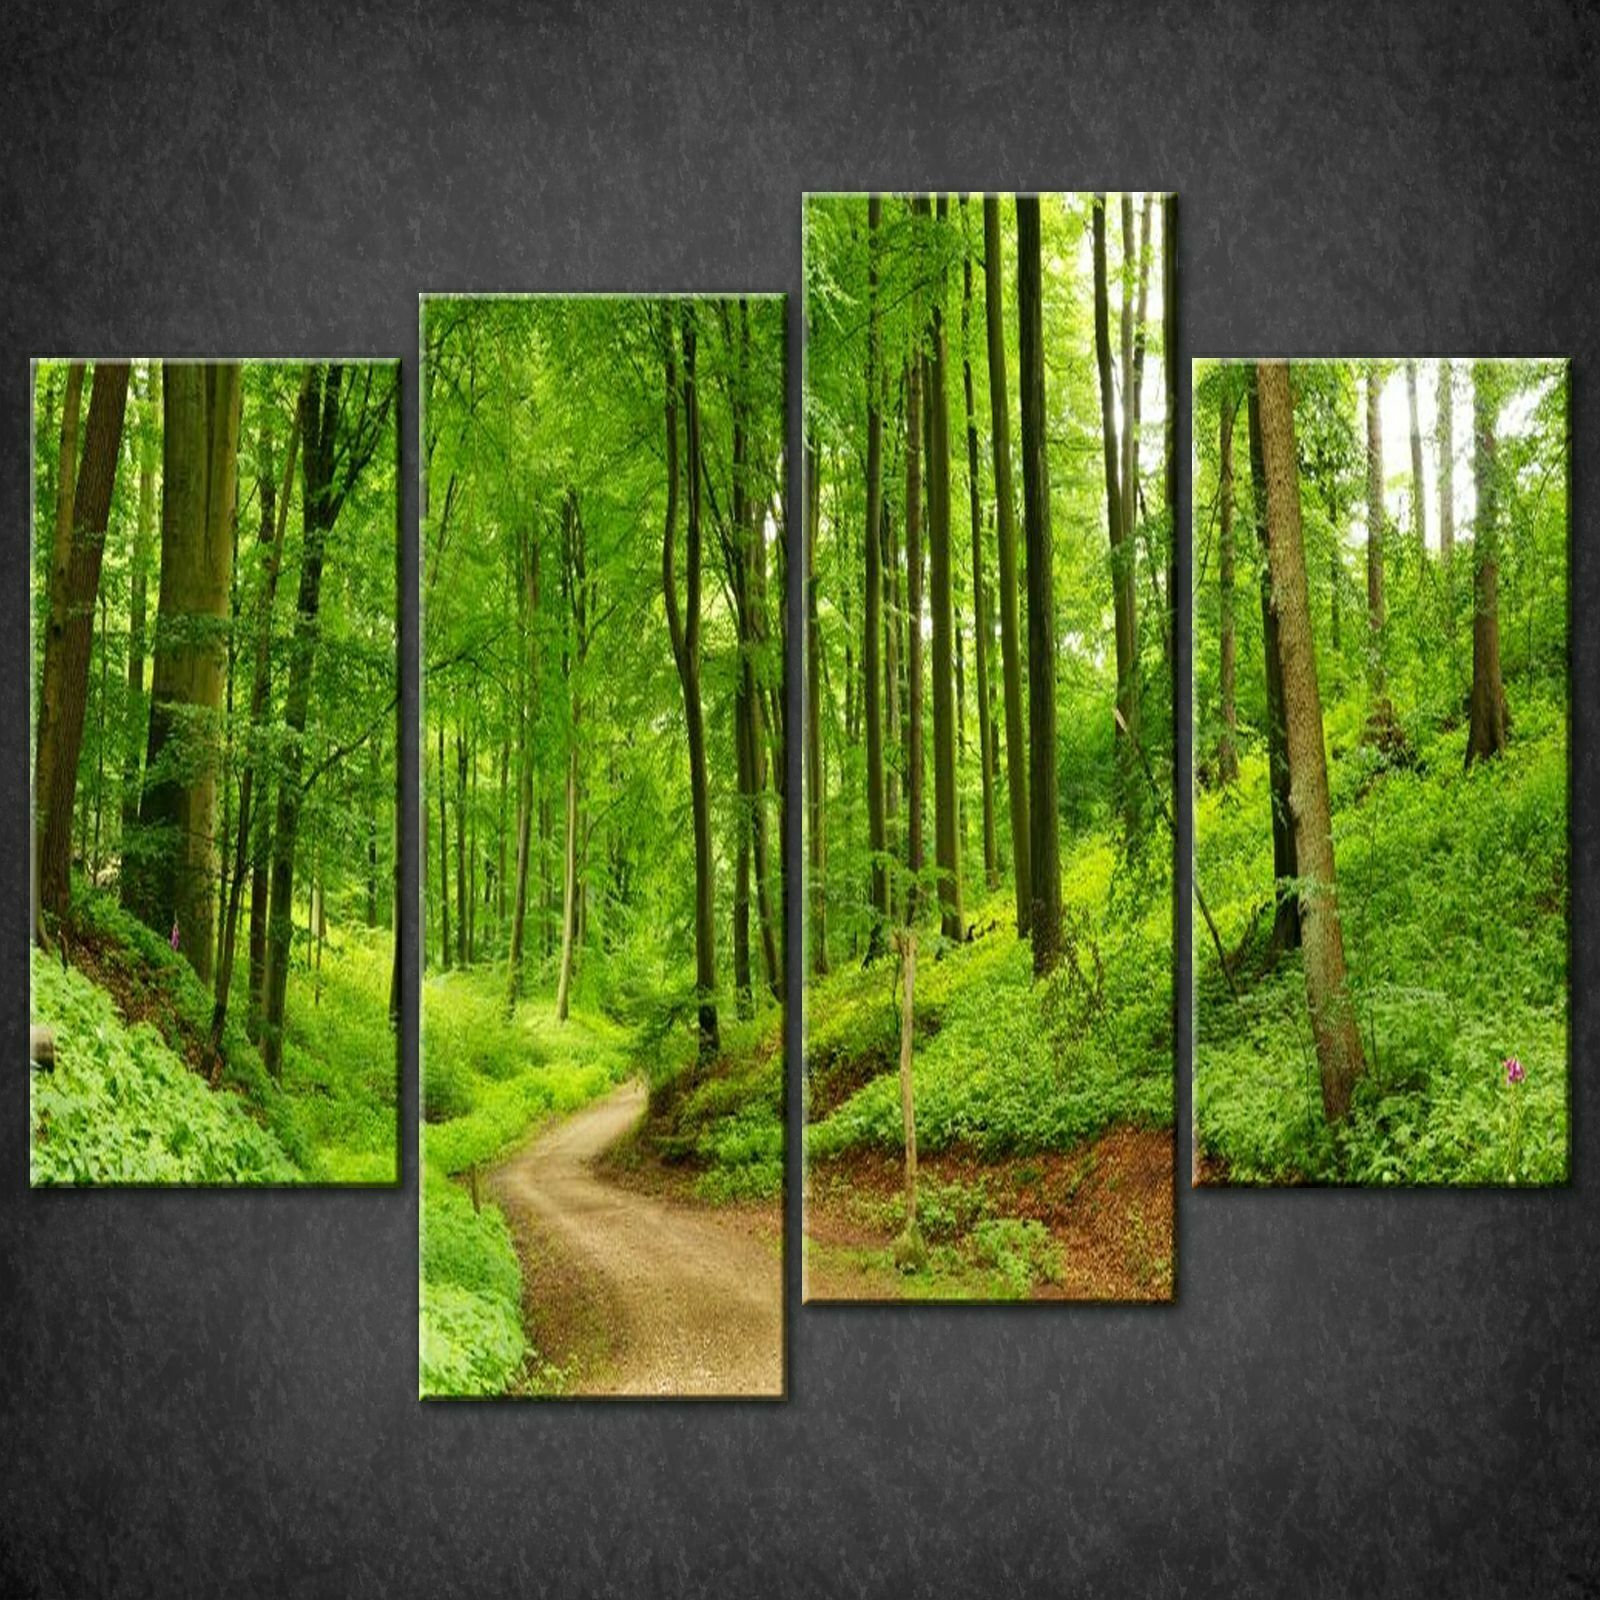 PATH IN Grün FOREST CANVAS PRINT PICTURE WALL ART FREE FAST DELIVERY